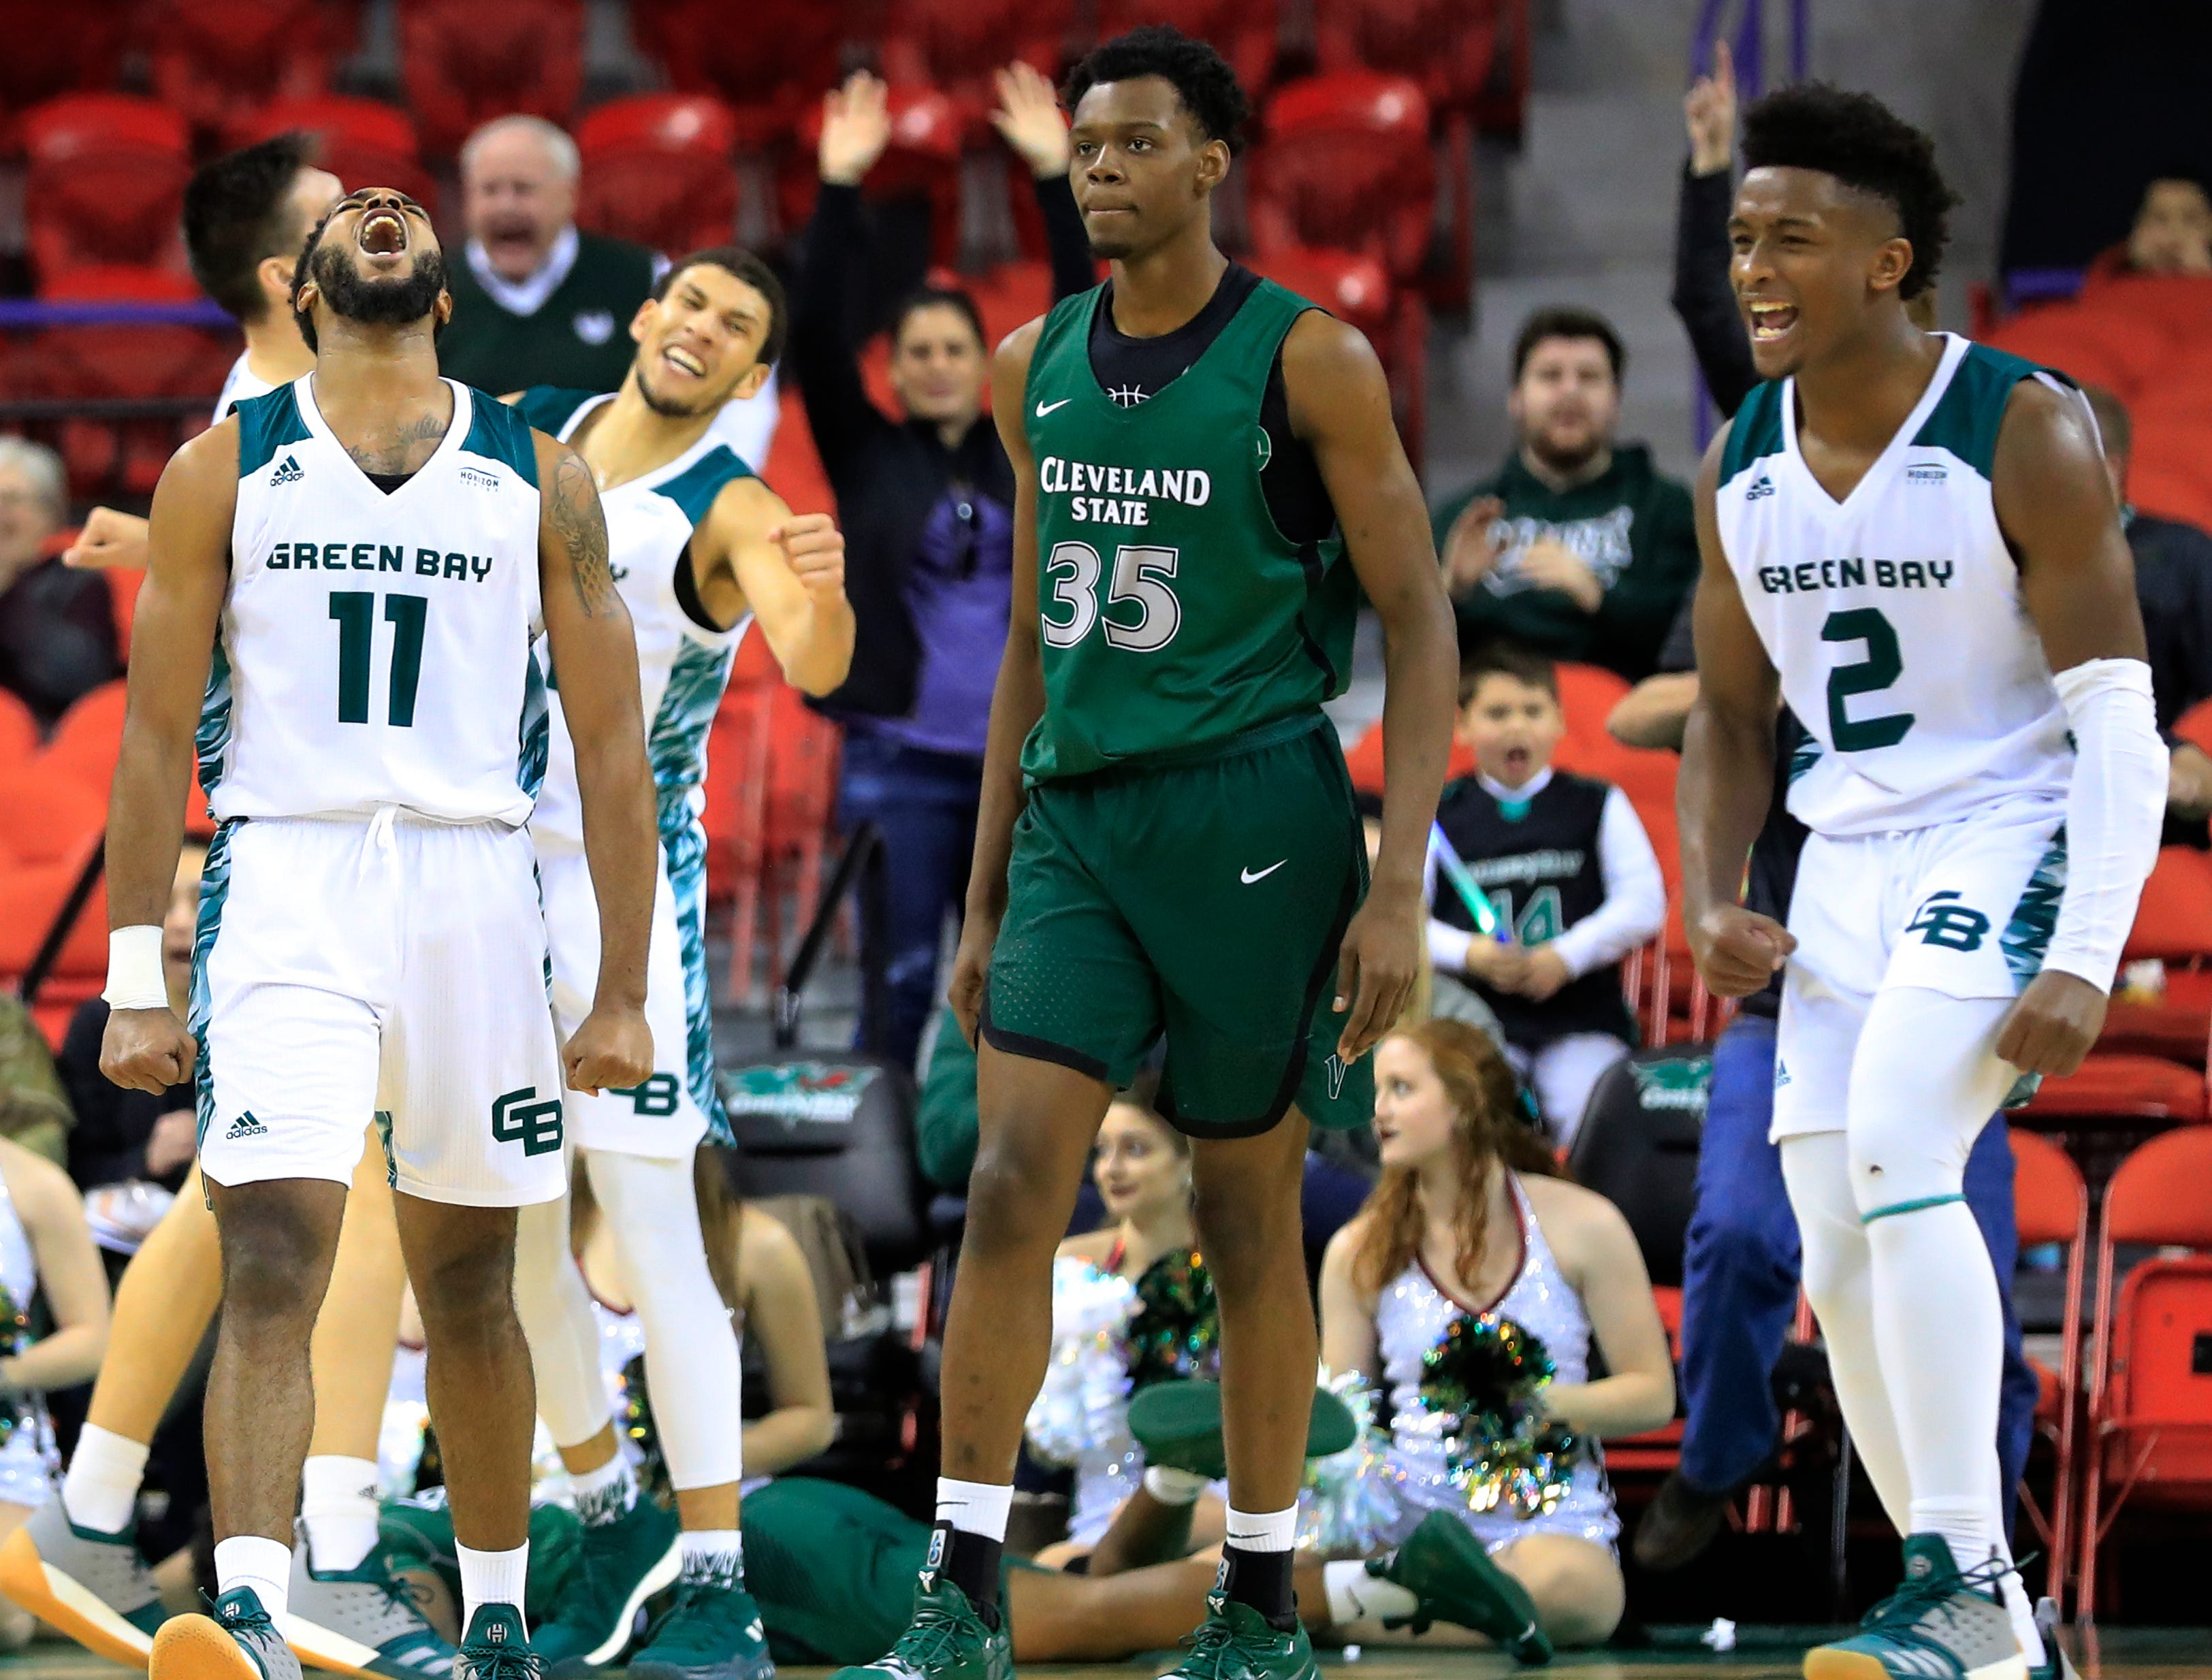 Green Bay Phoenix guard JayQuan McCloud (11) and guard PJ Pipes (2) celebrate after a defensive stop in the final minute against the Cleveland State Vikings in a Horizon League basketball game at the Resch Center on Saturday, January 5, 2019 in Green Bay, Wis.